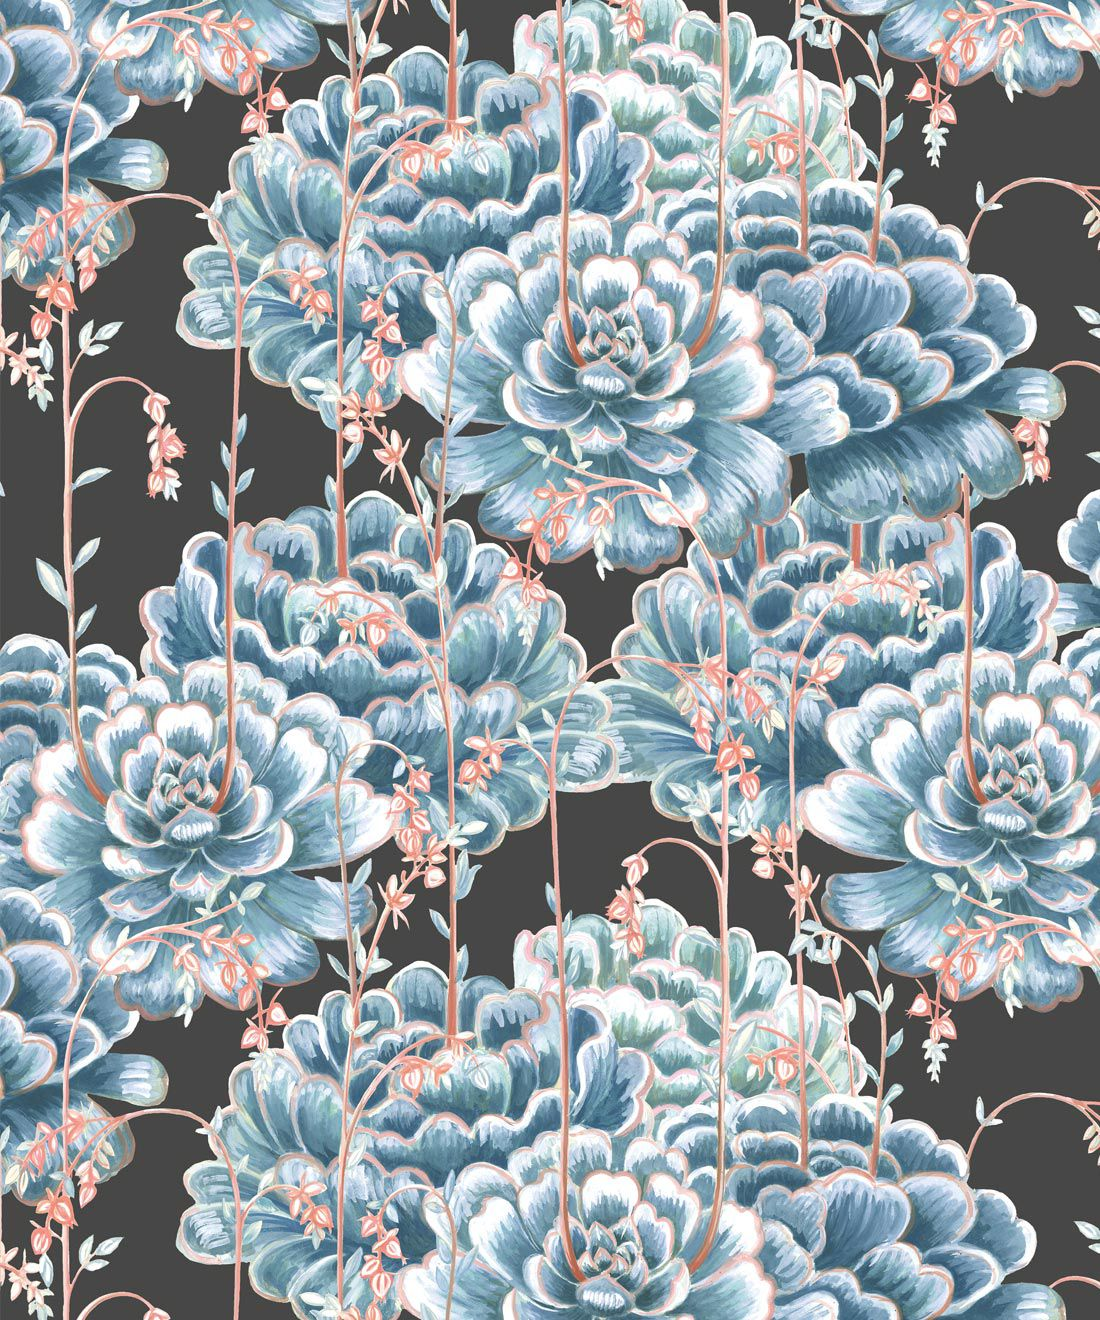 Succulents Wallpaper Blue Charcoal • Cactus Wallpaper • Desert Wallpaper Swatch on black background